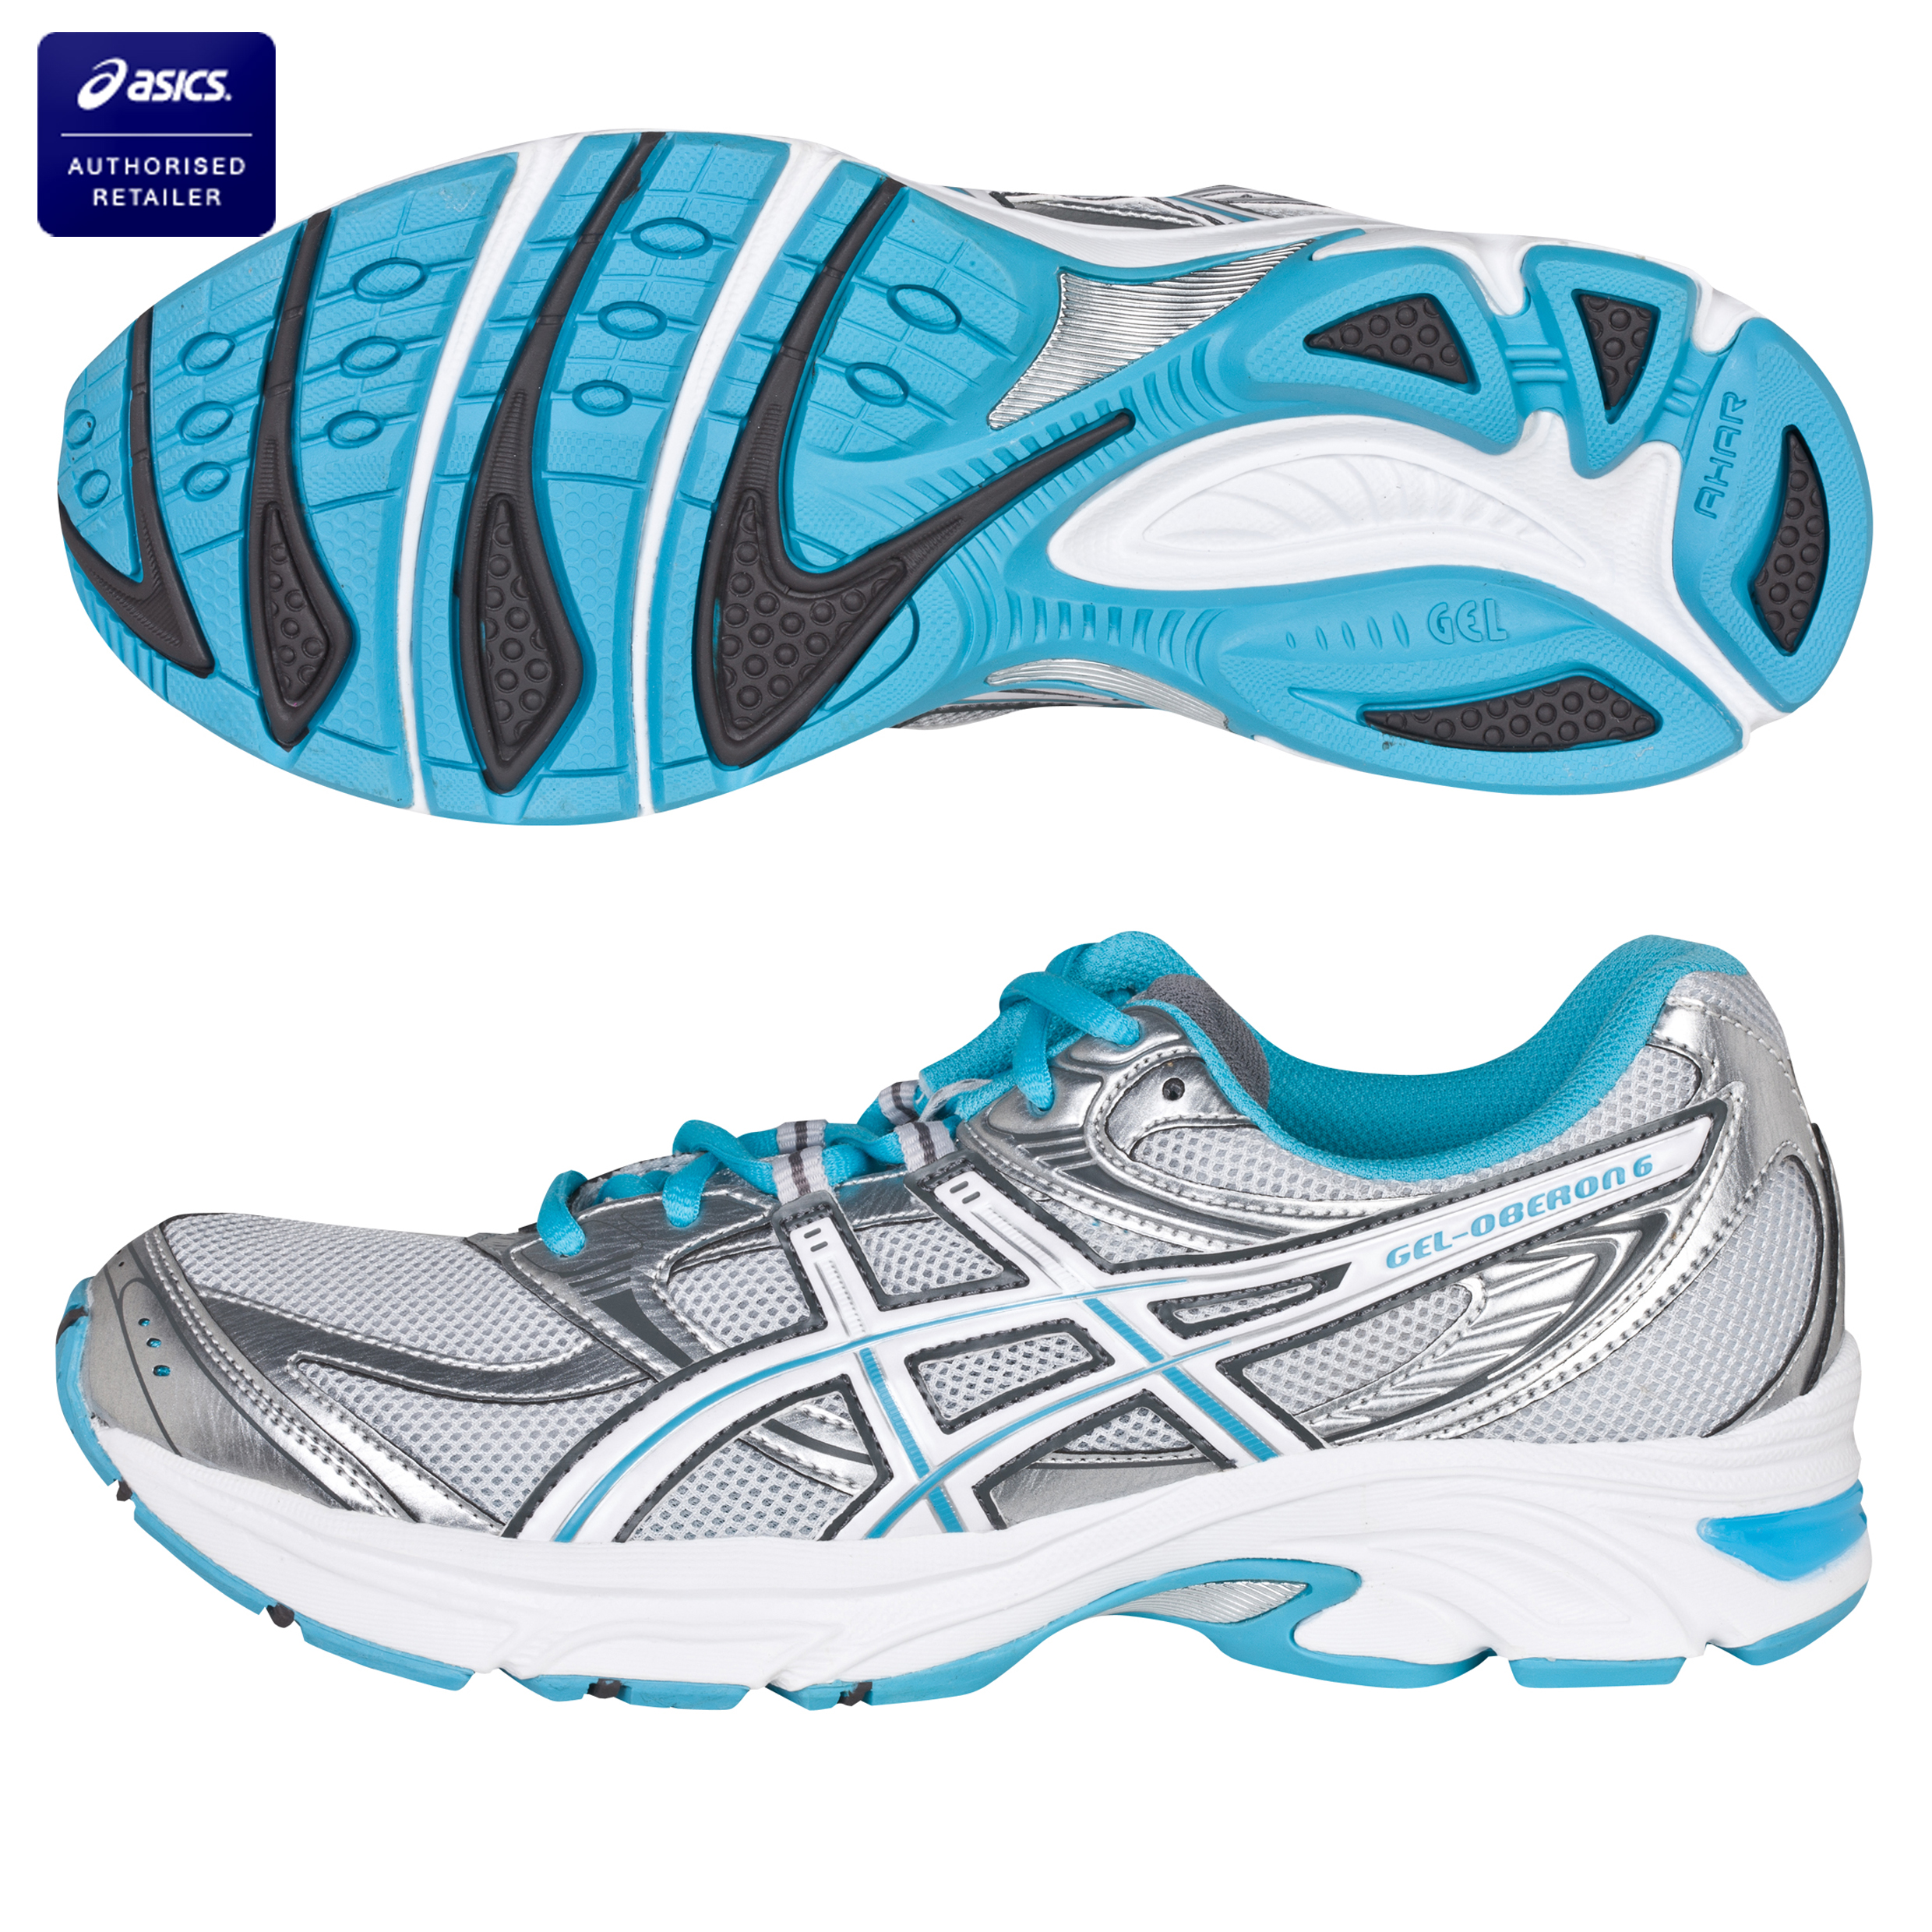 Asics Gel-Oberon 6 Running Trainers - Lightning/Charcoal/White - Womens